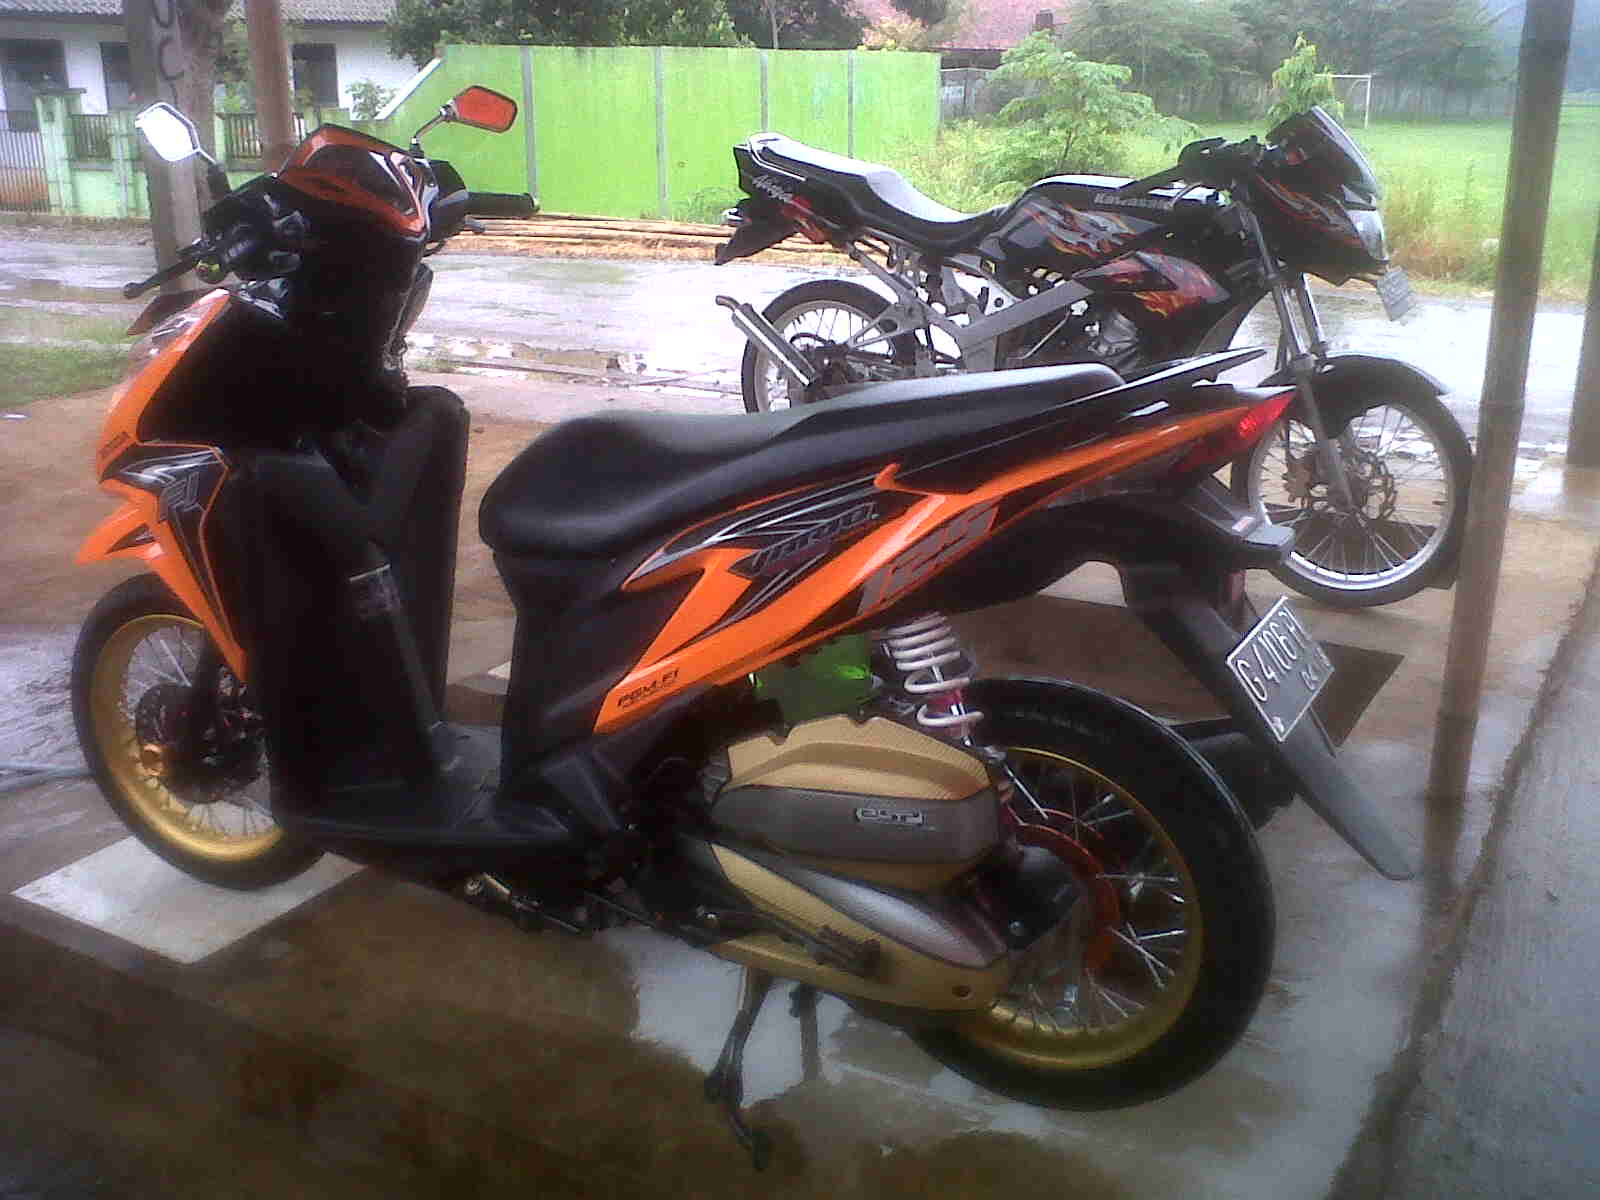 Modifikasi Vario Orange Kumpulan Modifikasi Motor Vario